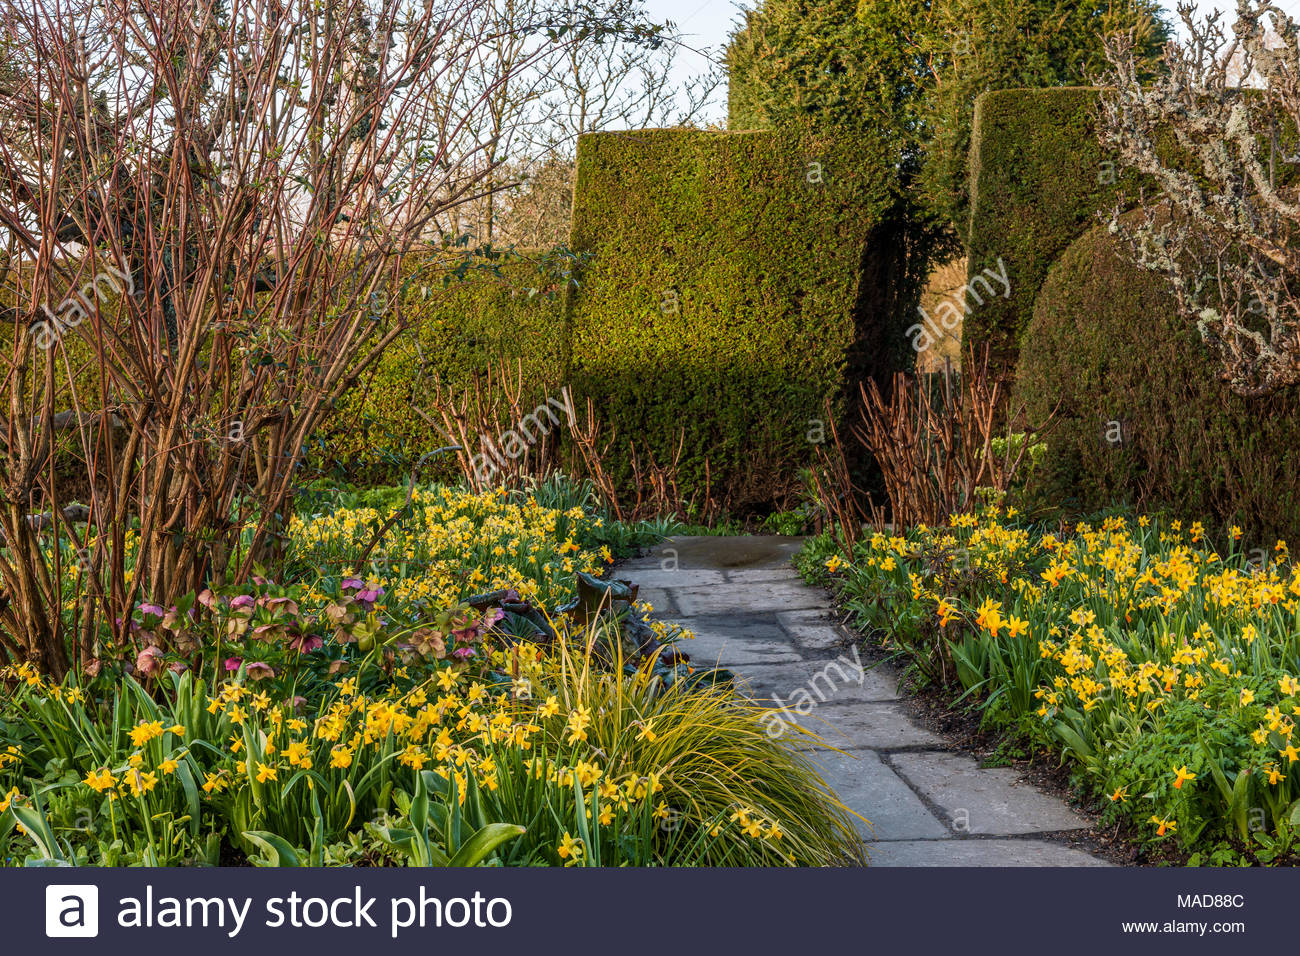 Daffodils in The High garden at Great Dixter Stock Photo: 178542124 ...